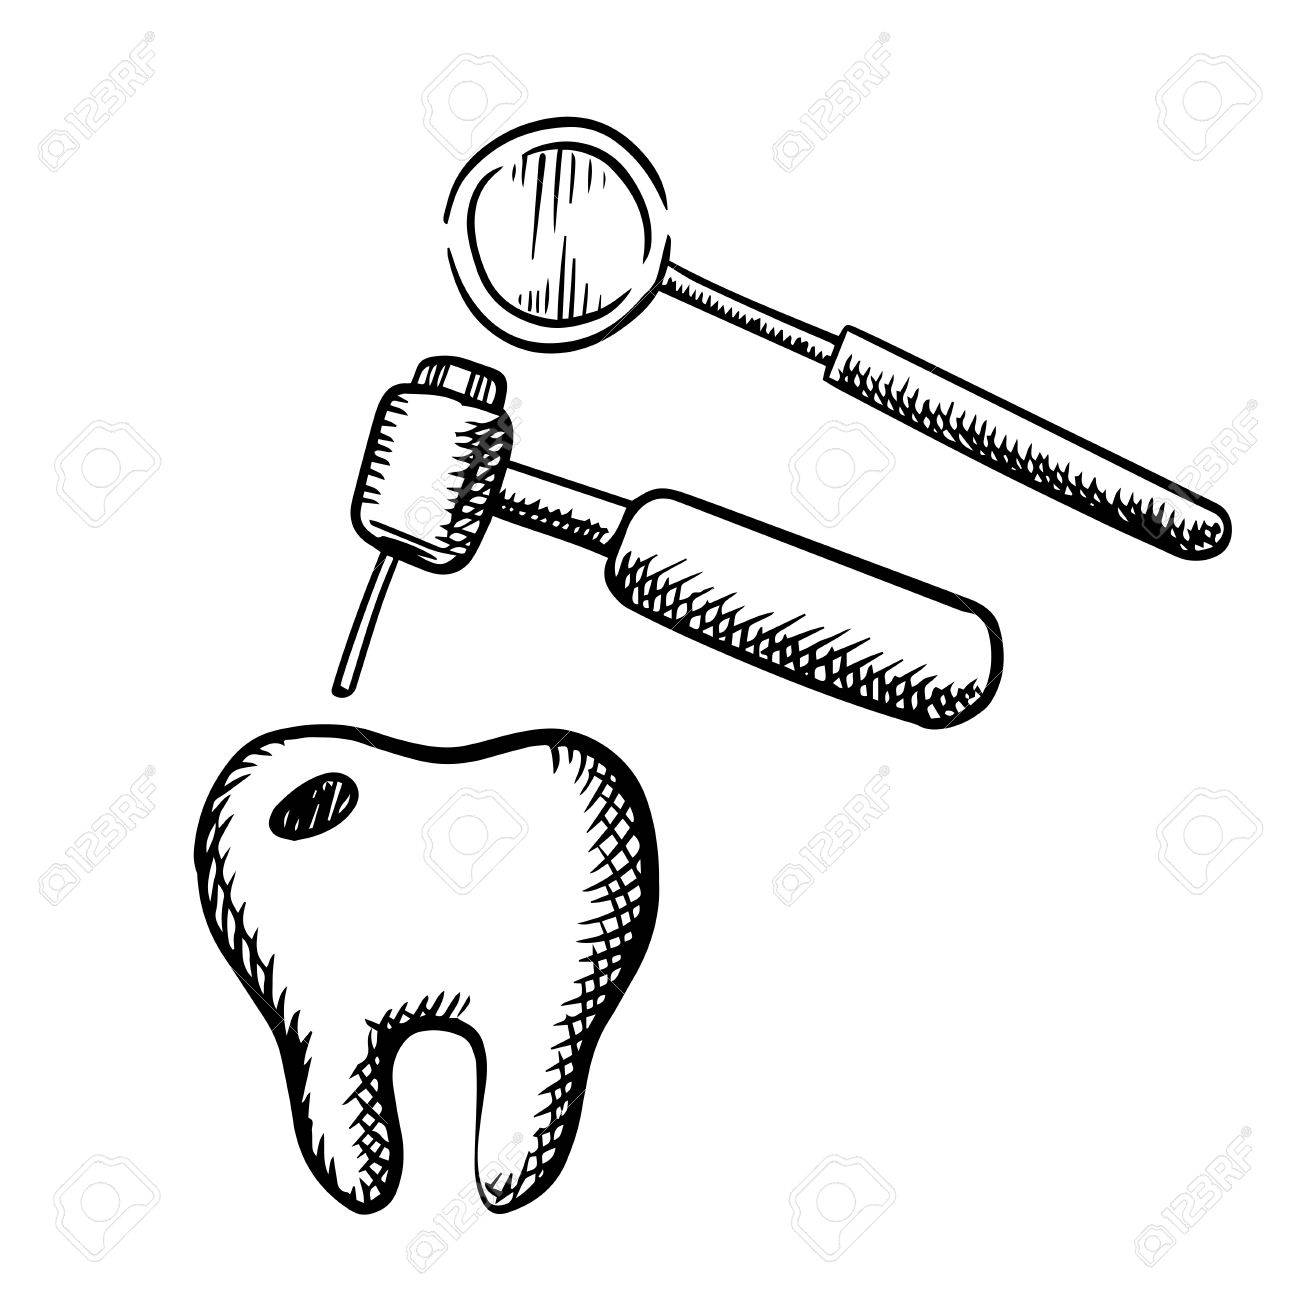 tooth with decay, dental drill and mirror, isolated on white